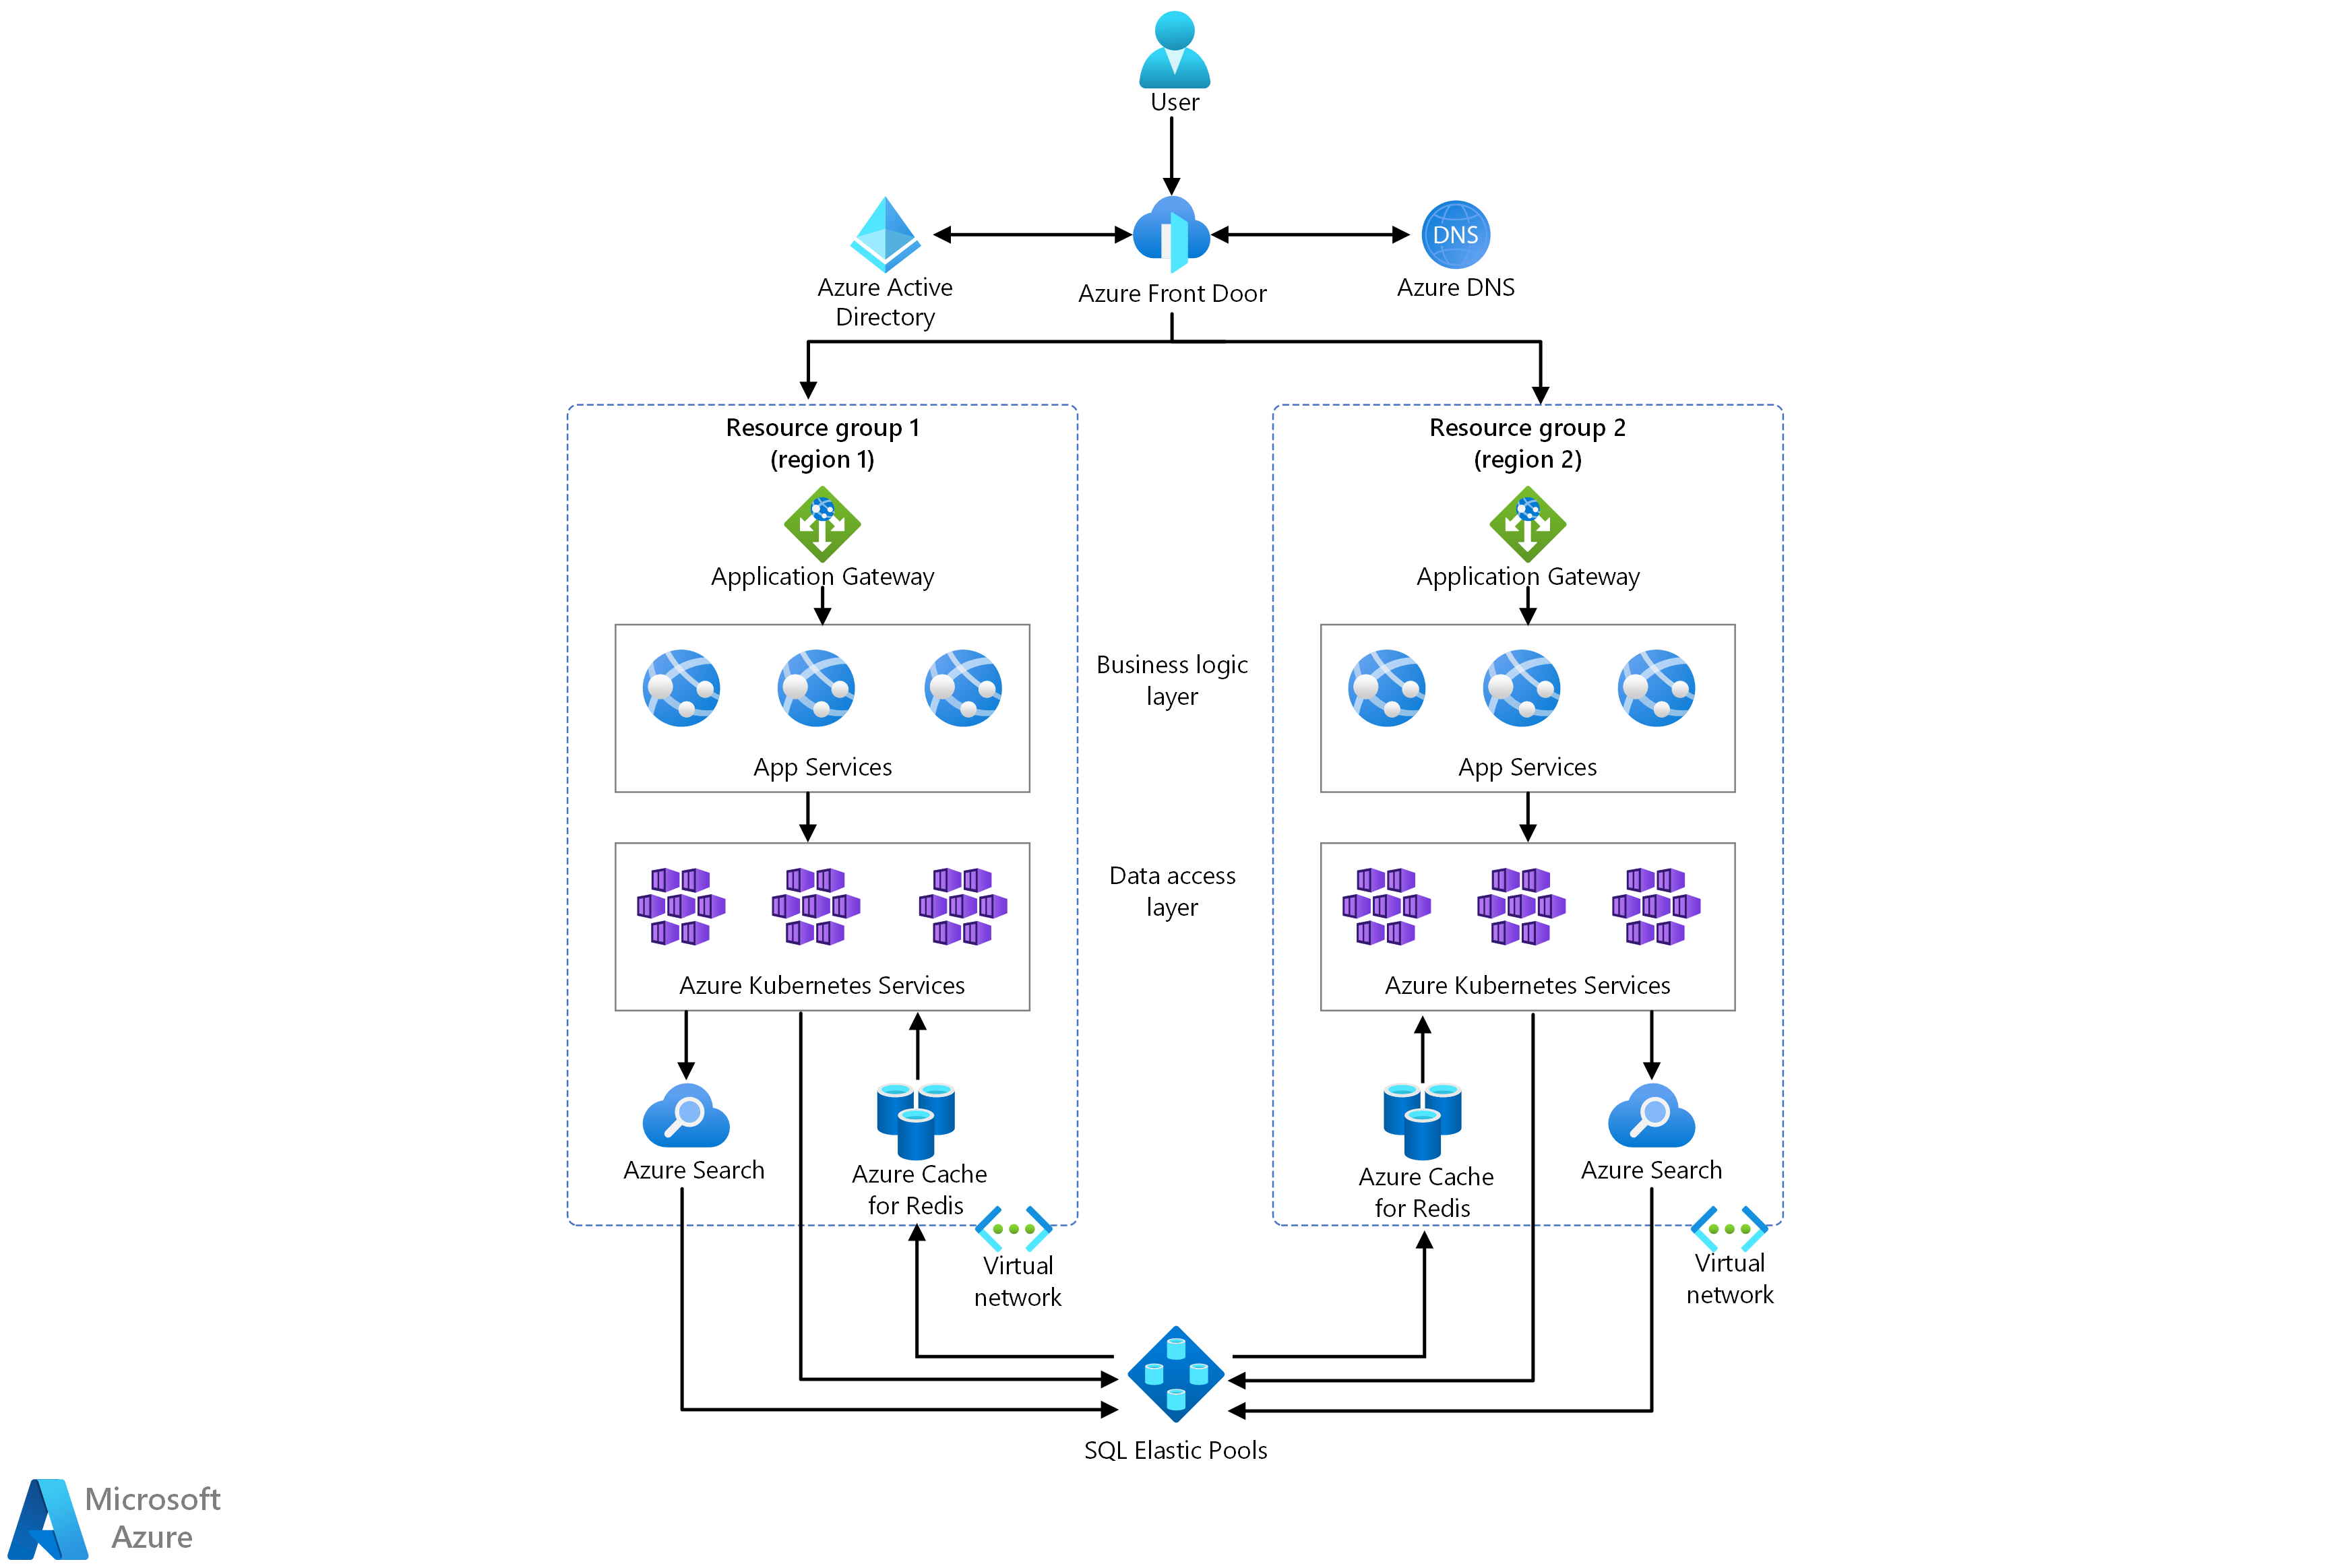 Thumbnail of Multitenant SaaS on Azure Architectural Diagram.